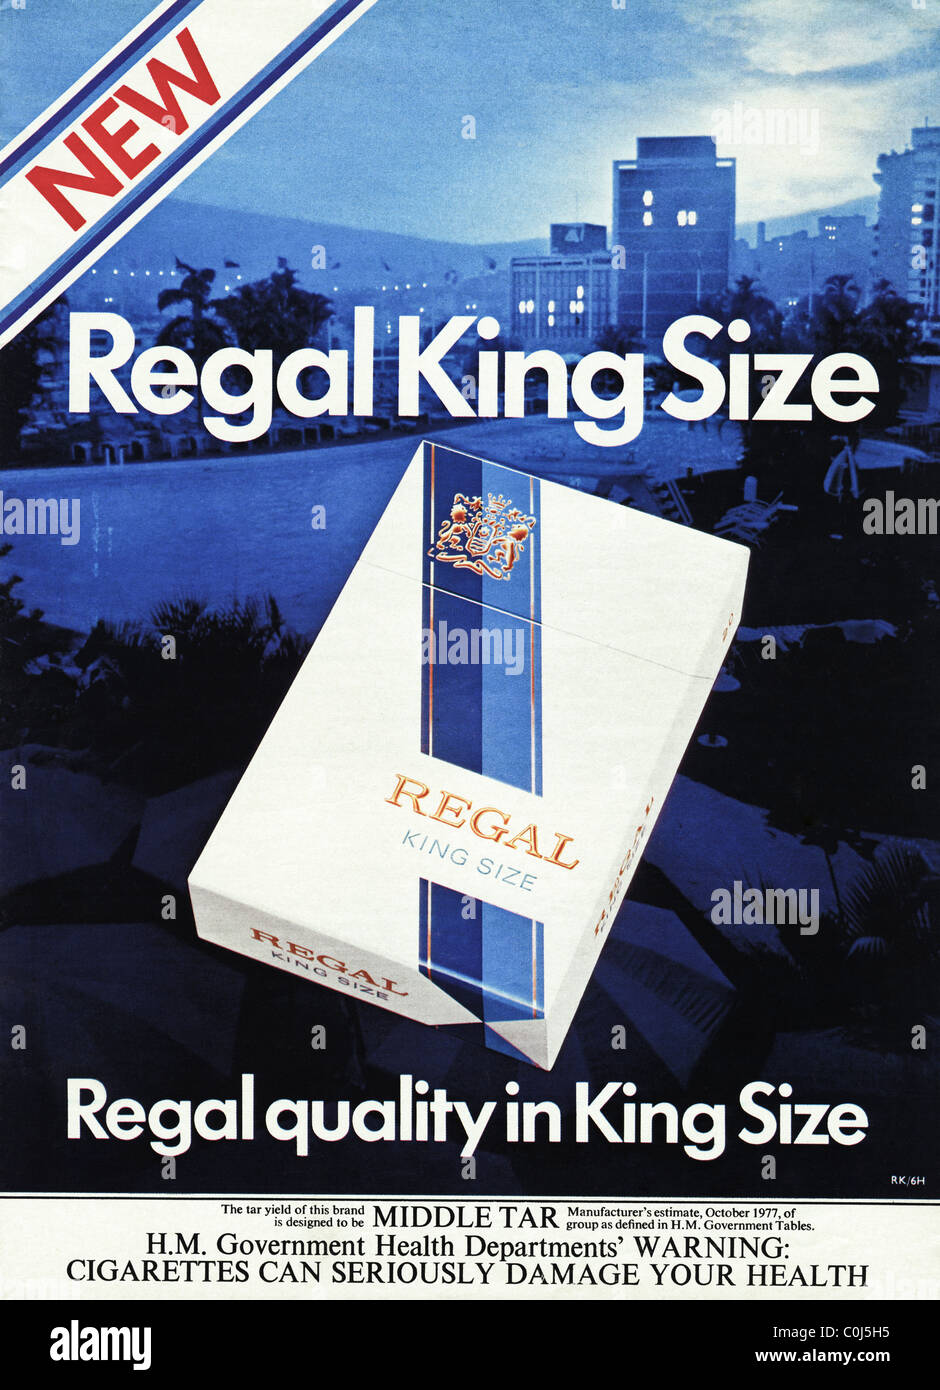 Full page advertisement in 1970s men's magazine for NEW REGAL KING SIZE filter tipped cigarettes - Stock Image